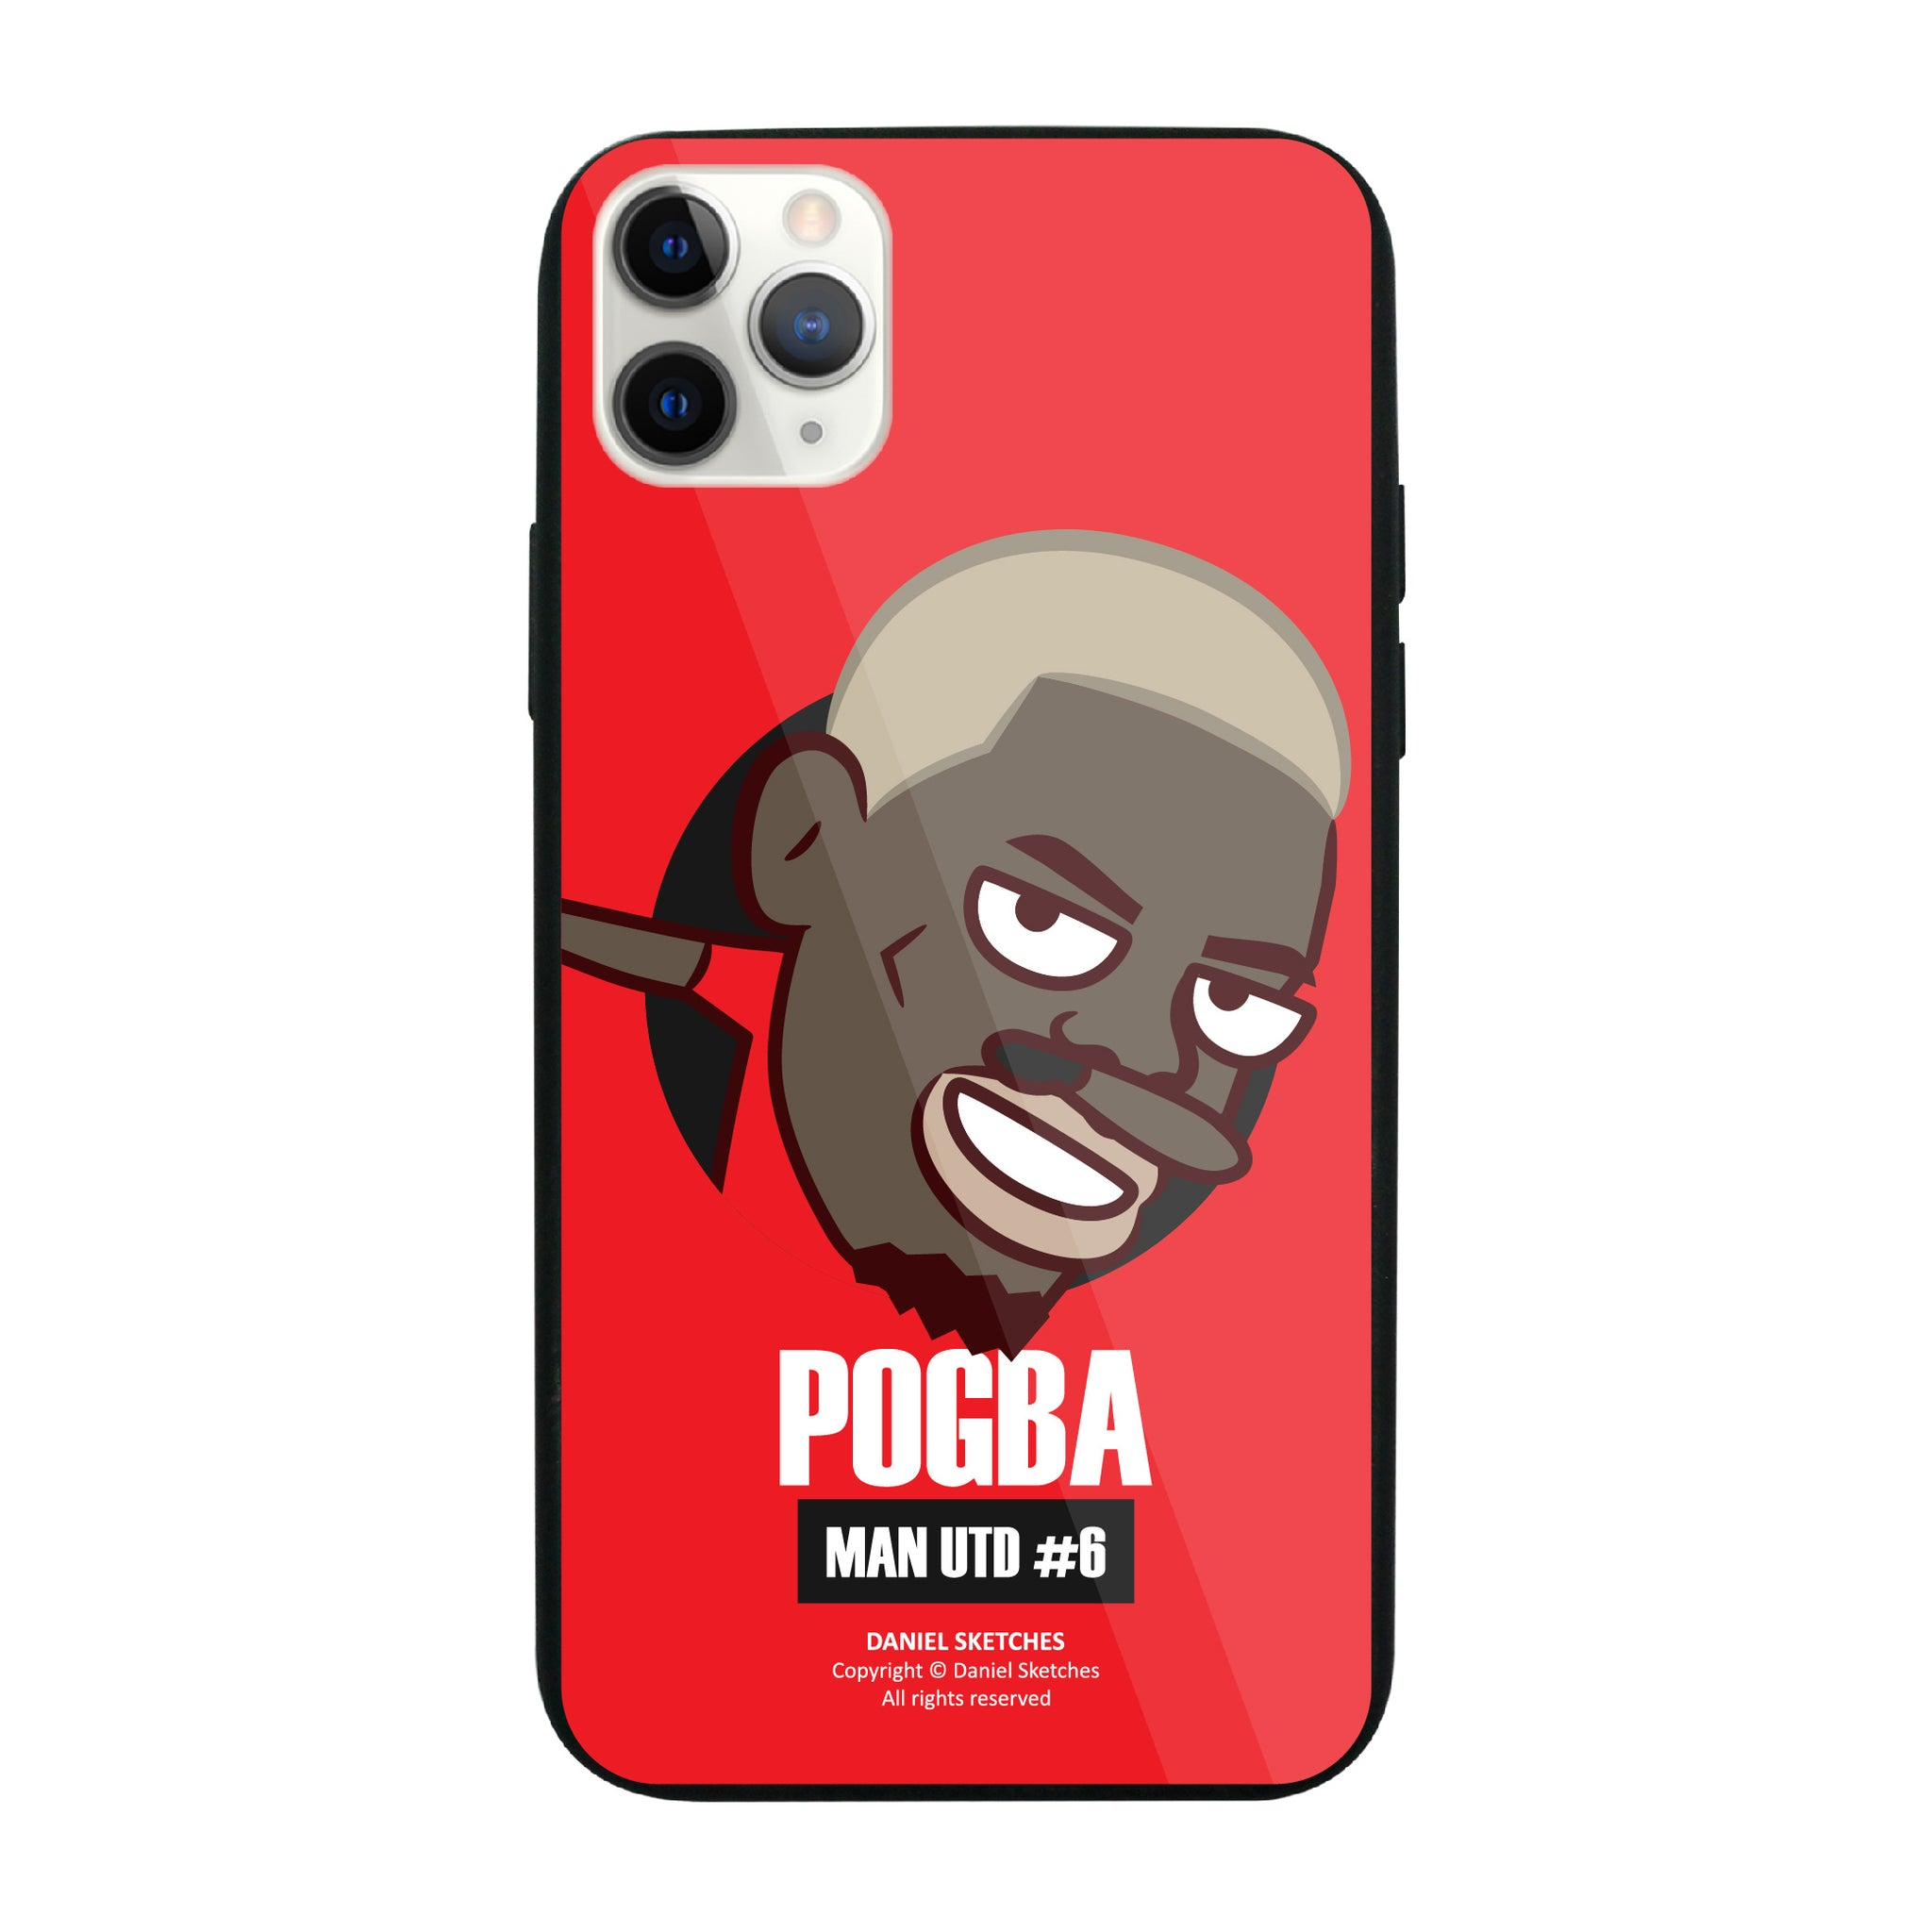 Pogba Glossy Case (DS0048G)